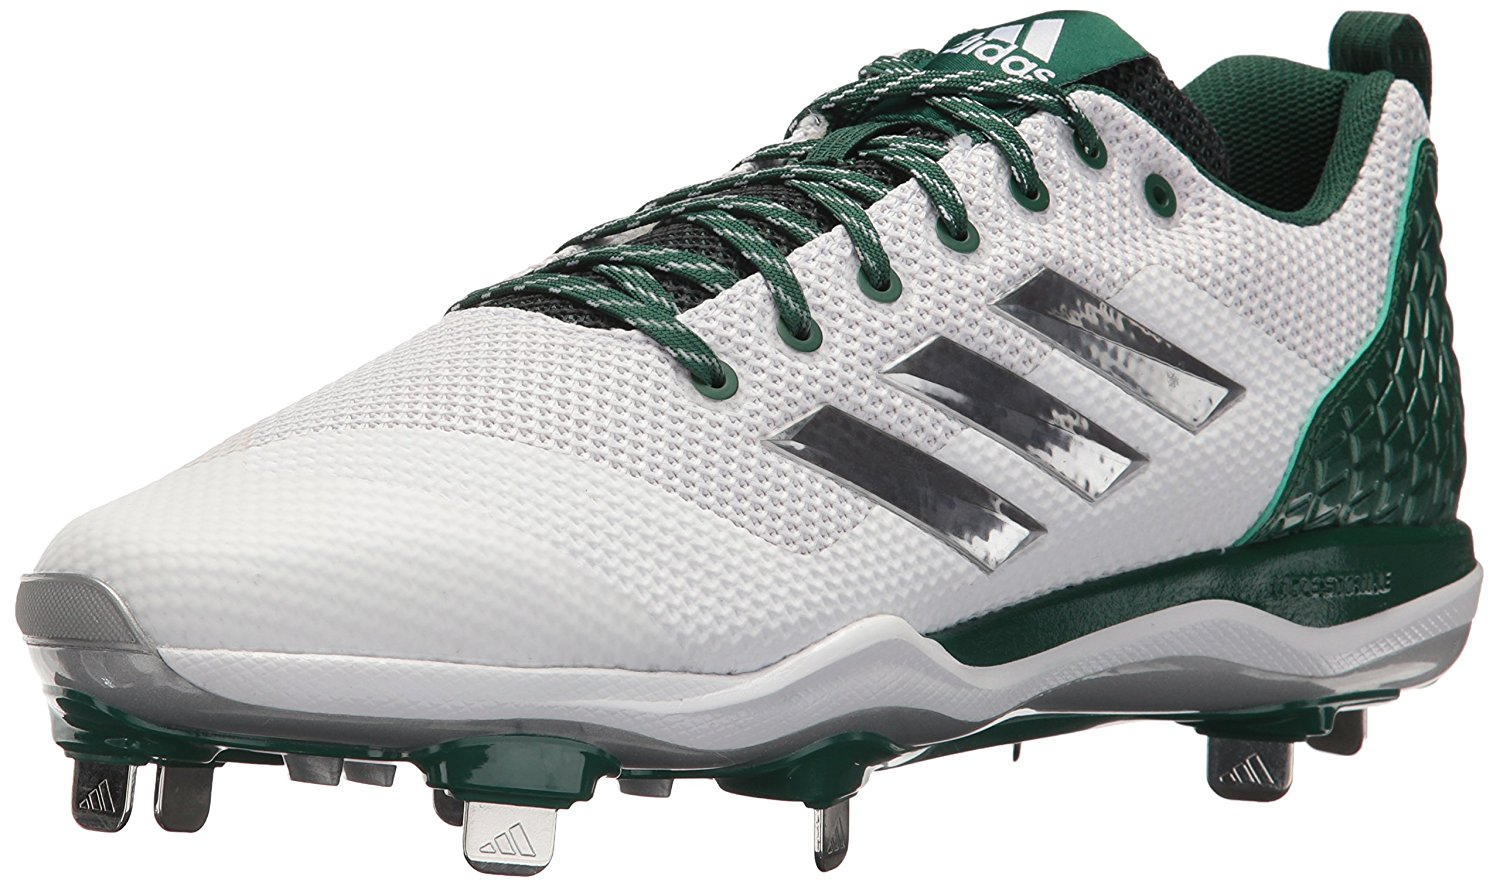 03aba958a PairMySole  Adidas Mens Poweralley 5 Fabric Low Top Lace Up Baseball ...